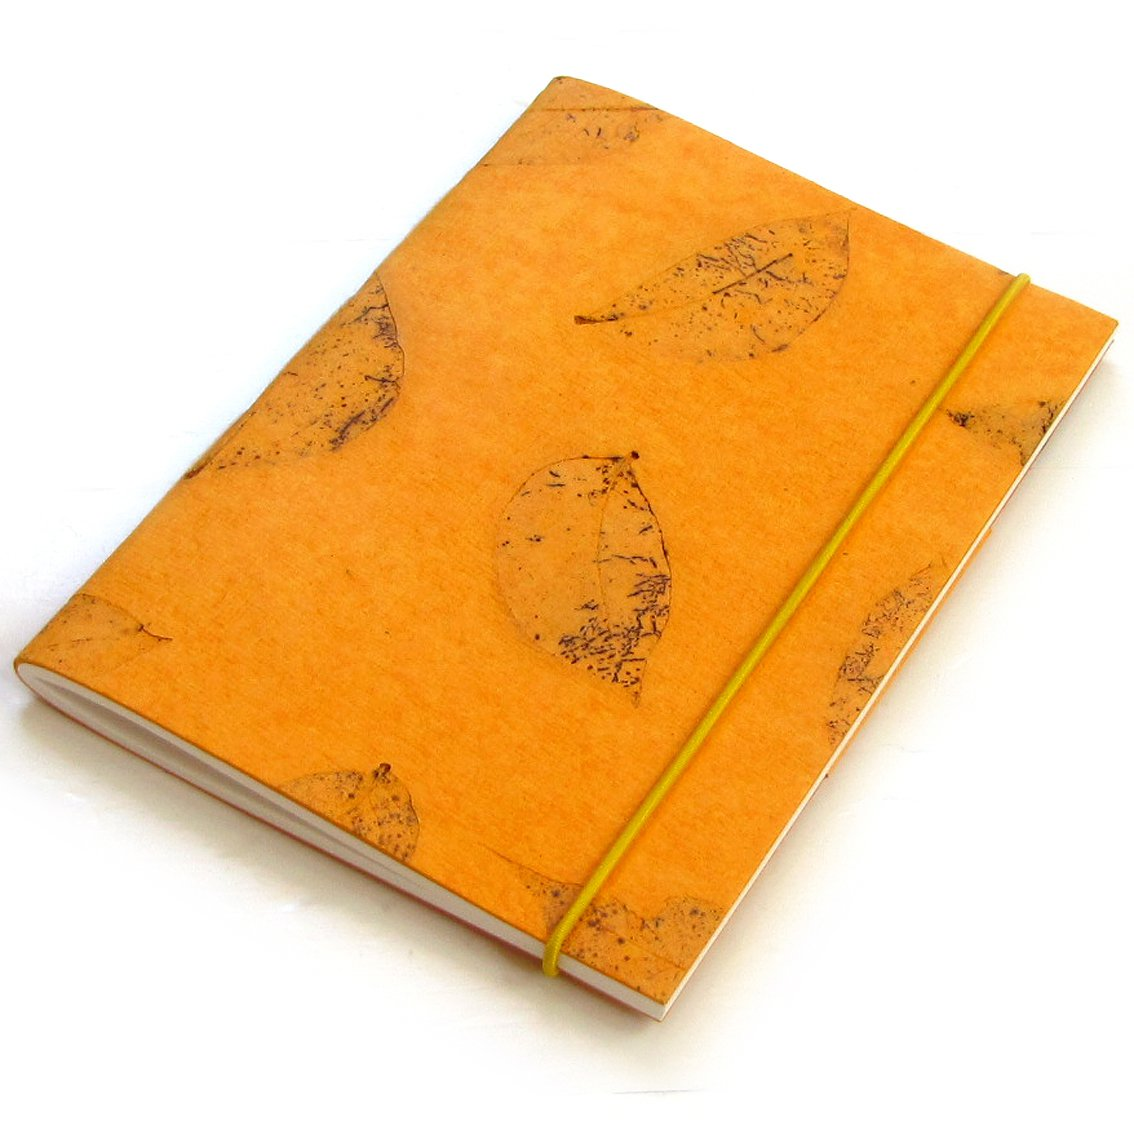 Handmade natural paper blank notebooks 5x7 40pp light orange small leaf paper crafts great gift